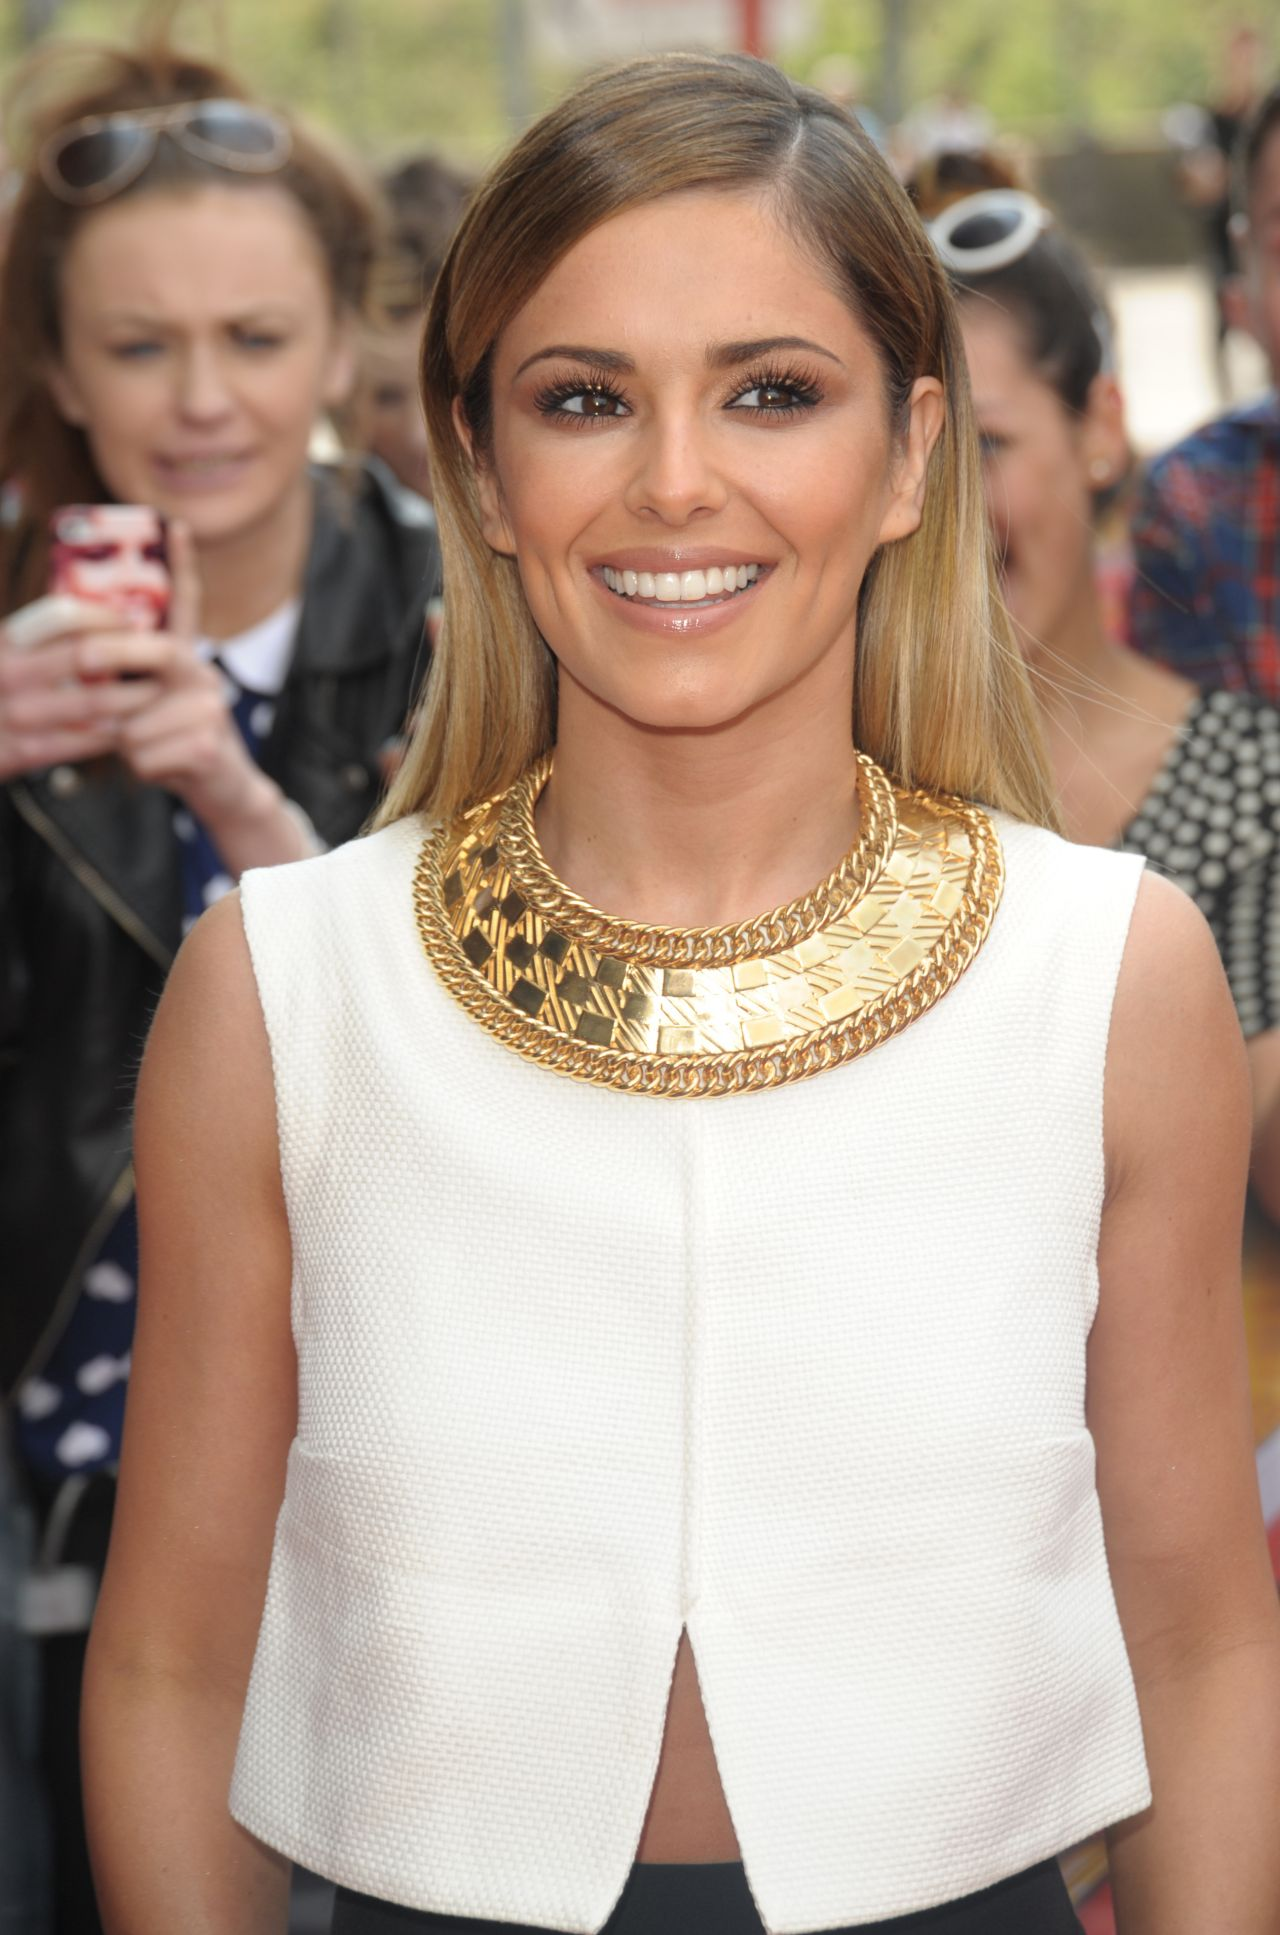 cheryl-cole-in-the-monochrome-ensemble-arriving-x-factor-auditions-in-london-june-2014_1